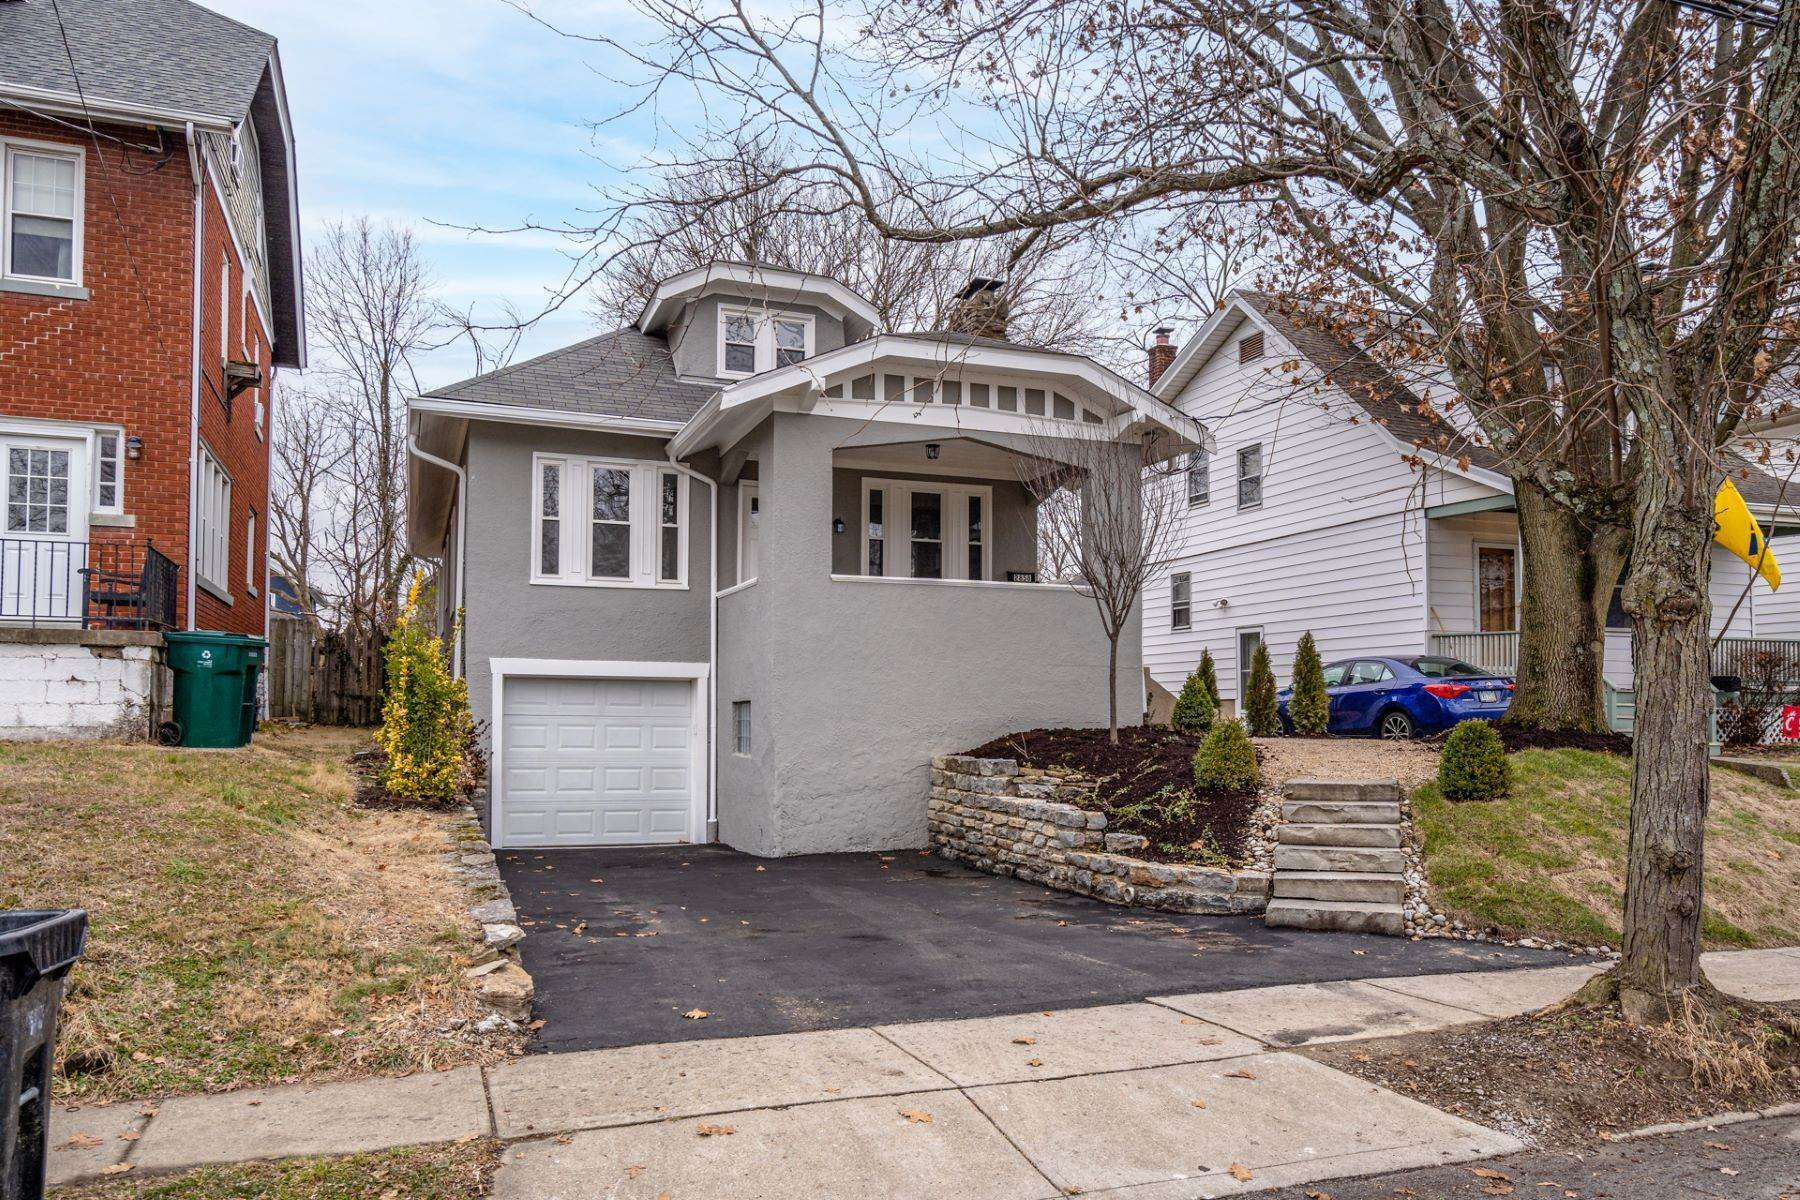 Single Family Homes for Sale at 2858 Markbreit Avenue, Cincinnati, OH 45209 2858 Markbreit Avenue Cincinnati, Ohio 45209 United States